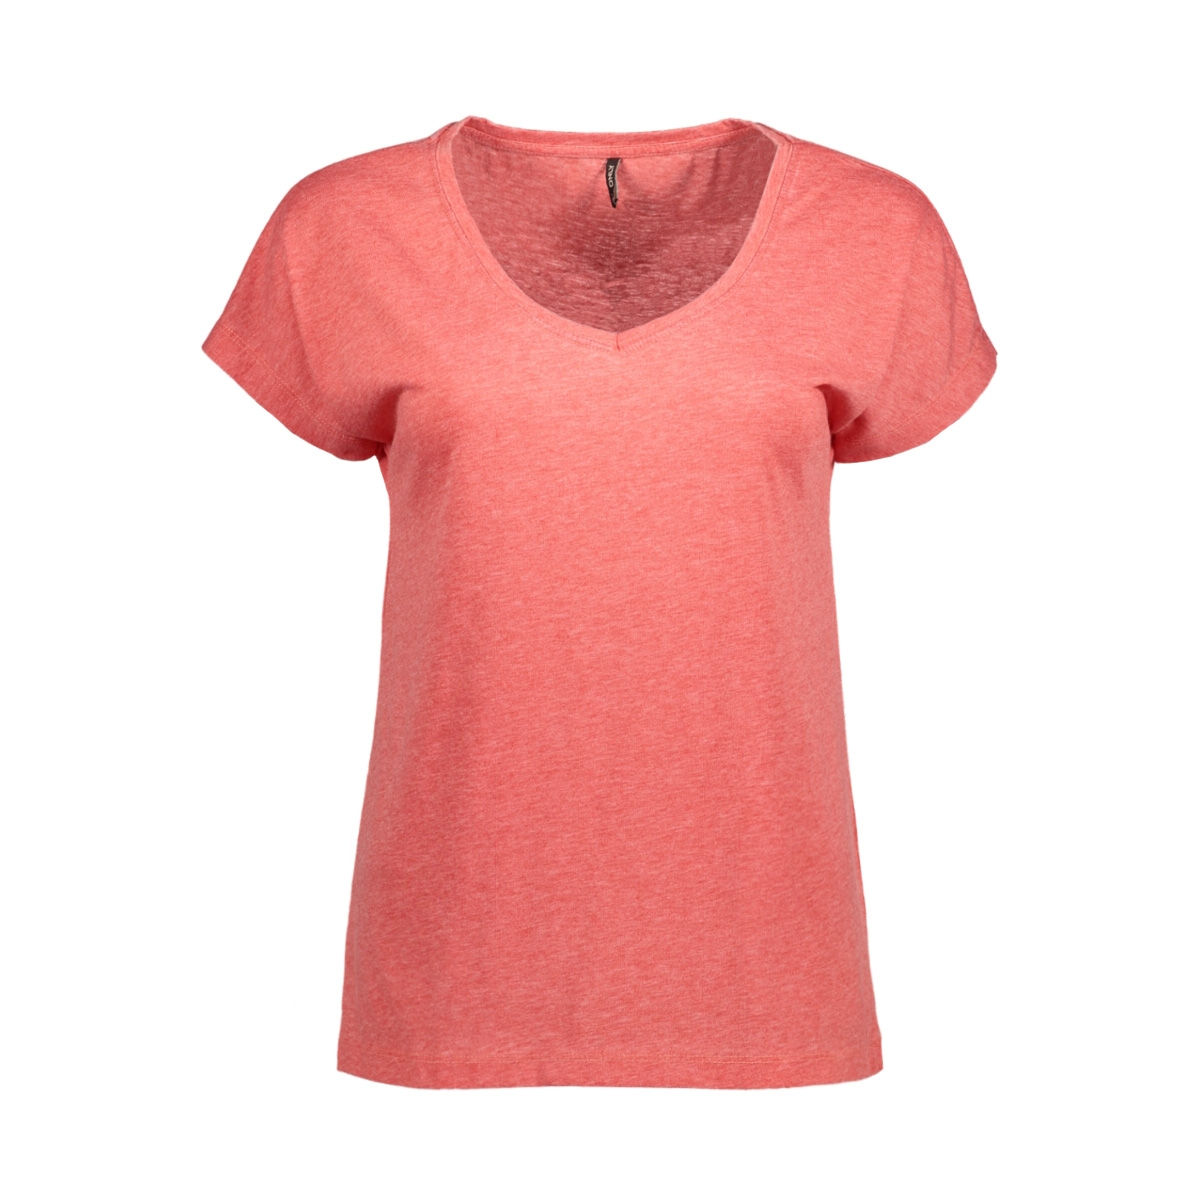 onltruly s/s v-neck top ess 15150979 only t-shirt high risk red